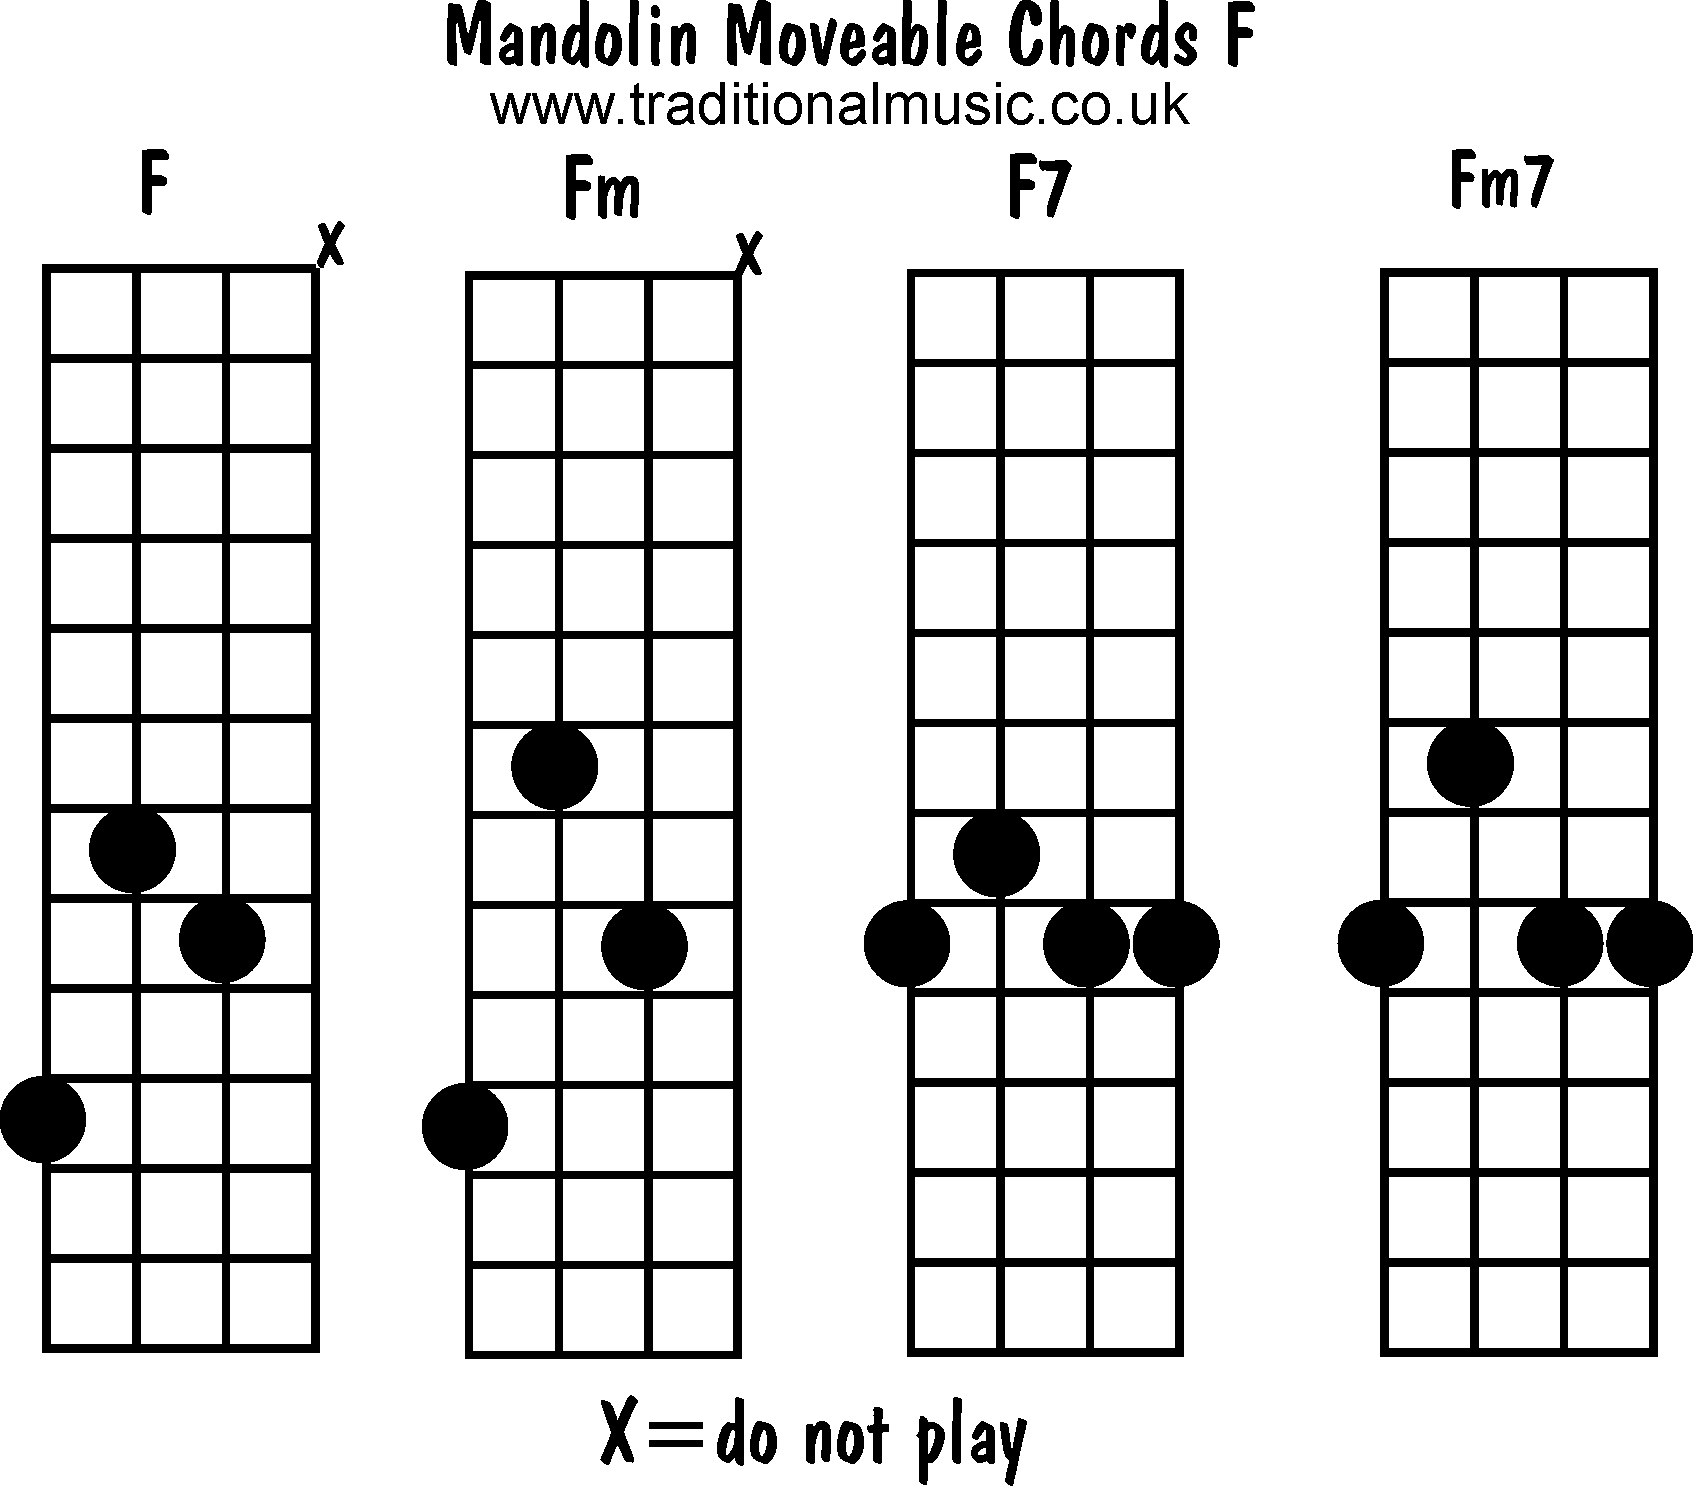 Mandolin chords moveable f fm f7 fm7 moveable mandolin chords f fm f7 fm7 hexwebz Gallery